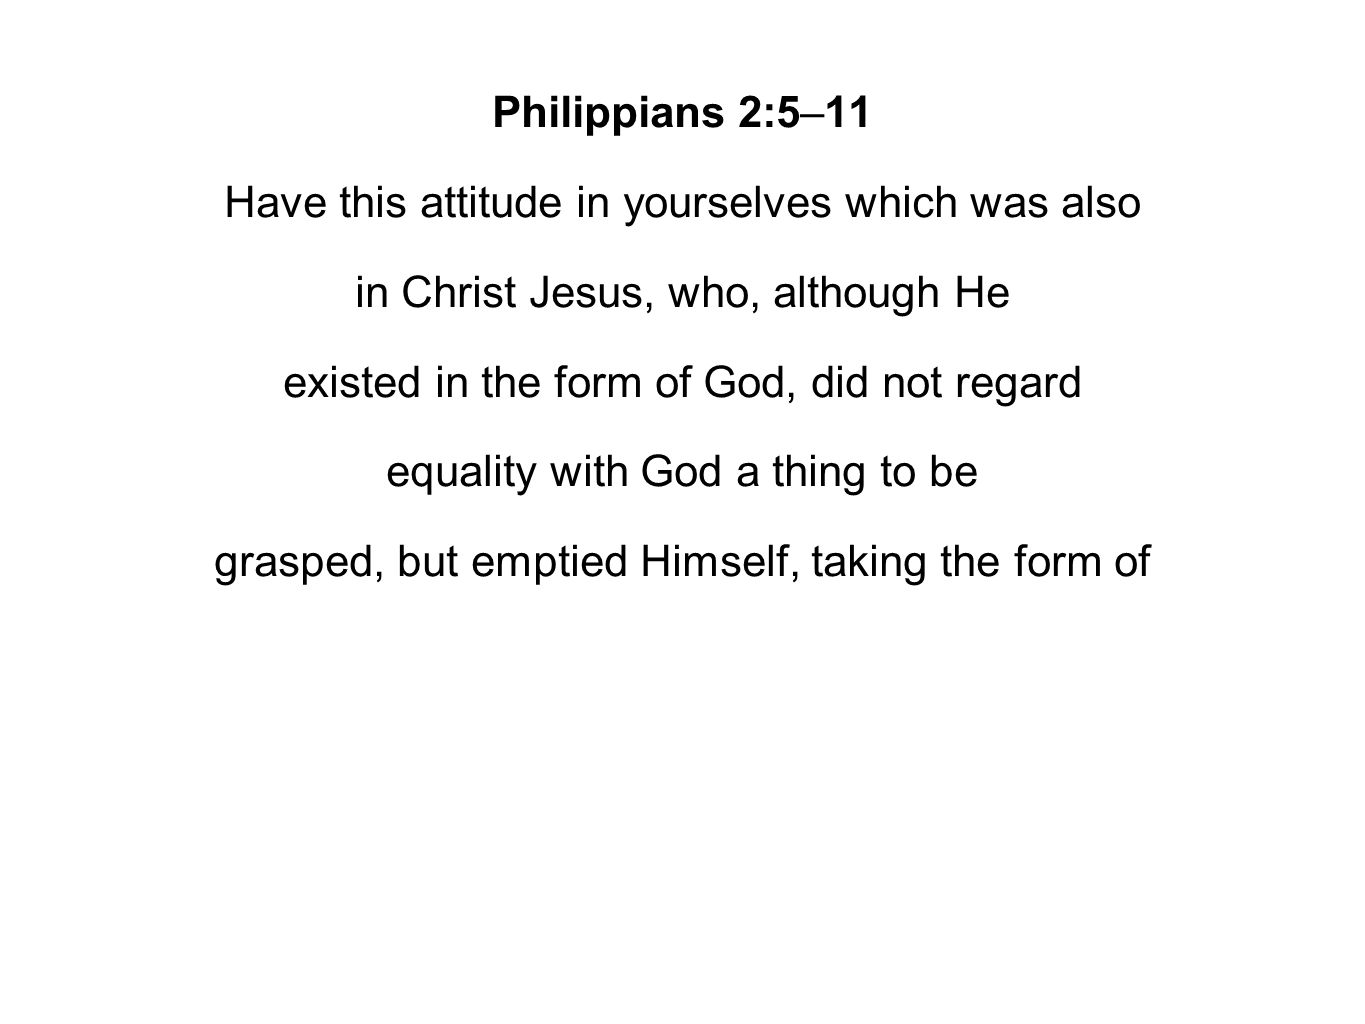 Philippians 2:5–11 Have this attitude in yourselves which was also in Christ Jesus, who, although He existed in the form of God, did not regard equality with God a thing to be grasped, but emptied Himself, taking the form of